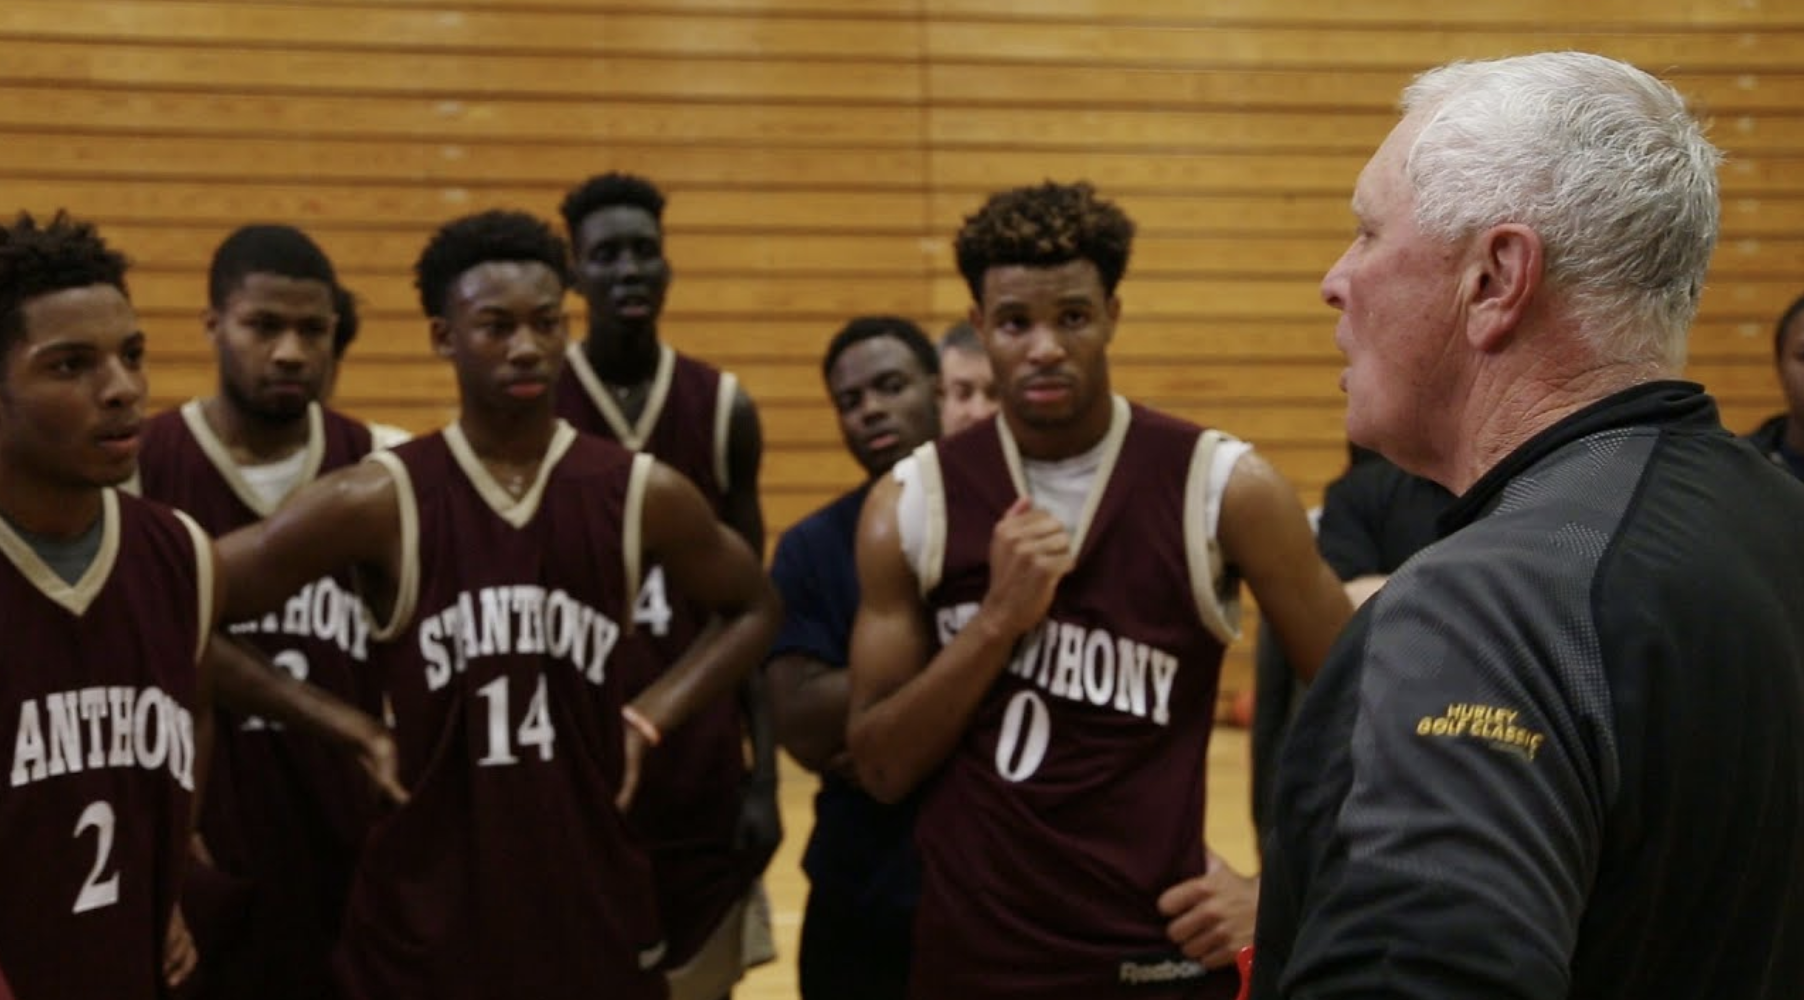 Bob Hurley and St. Anthony team